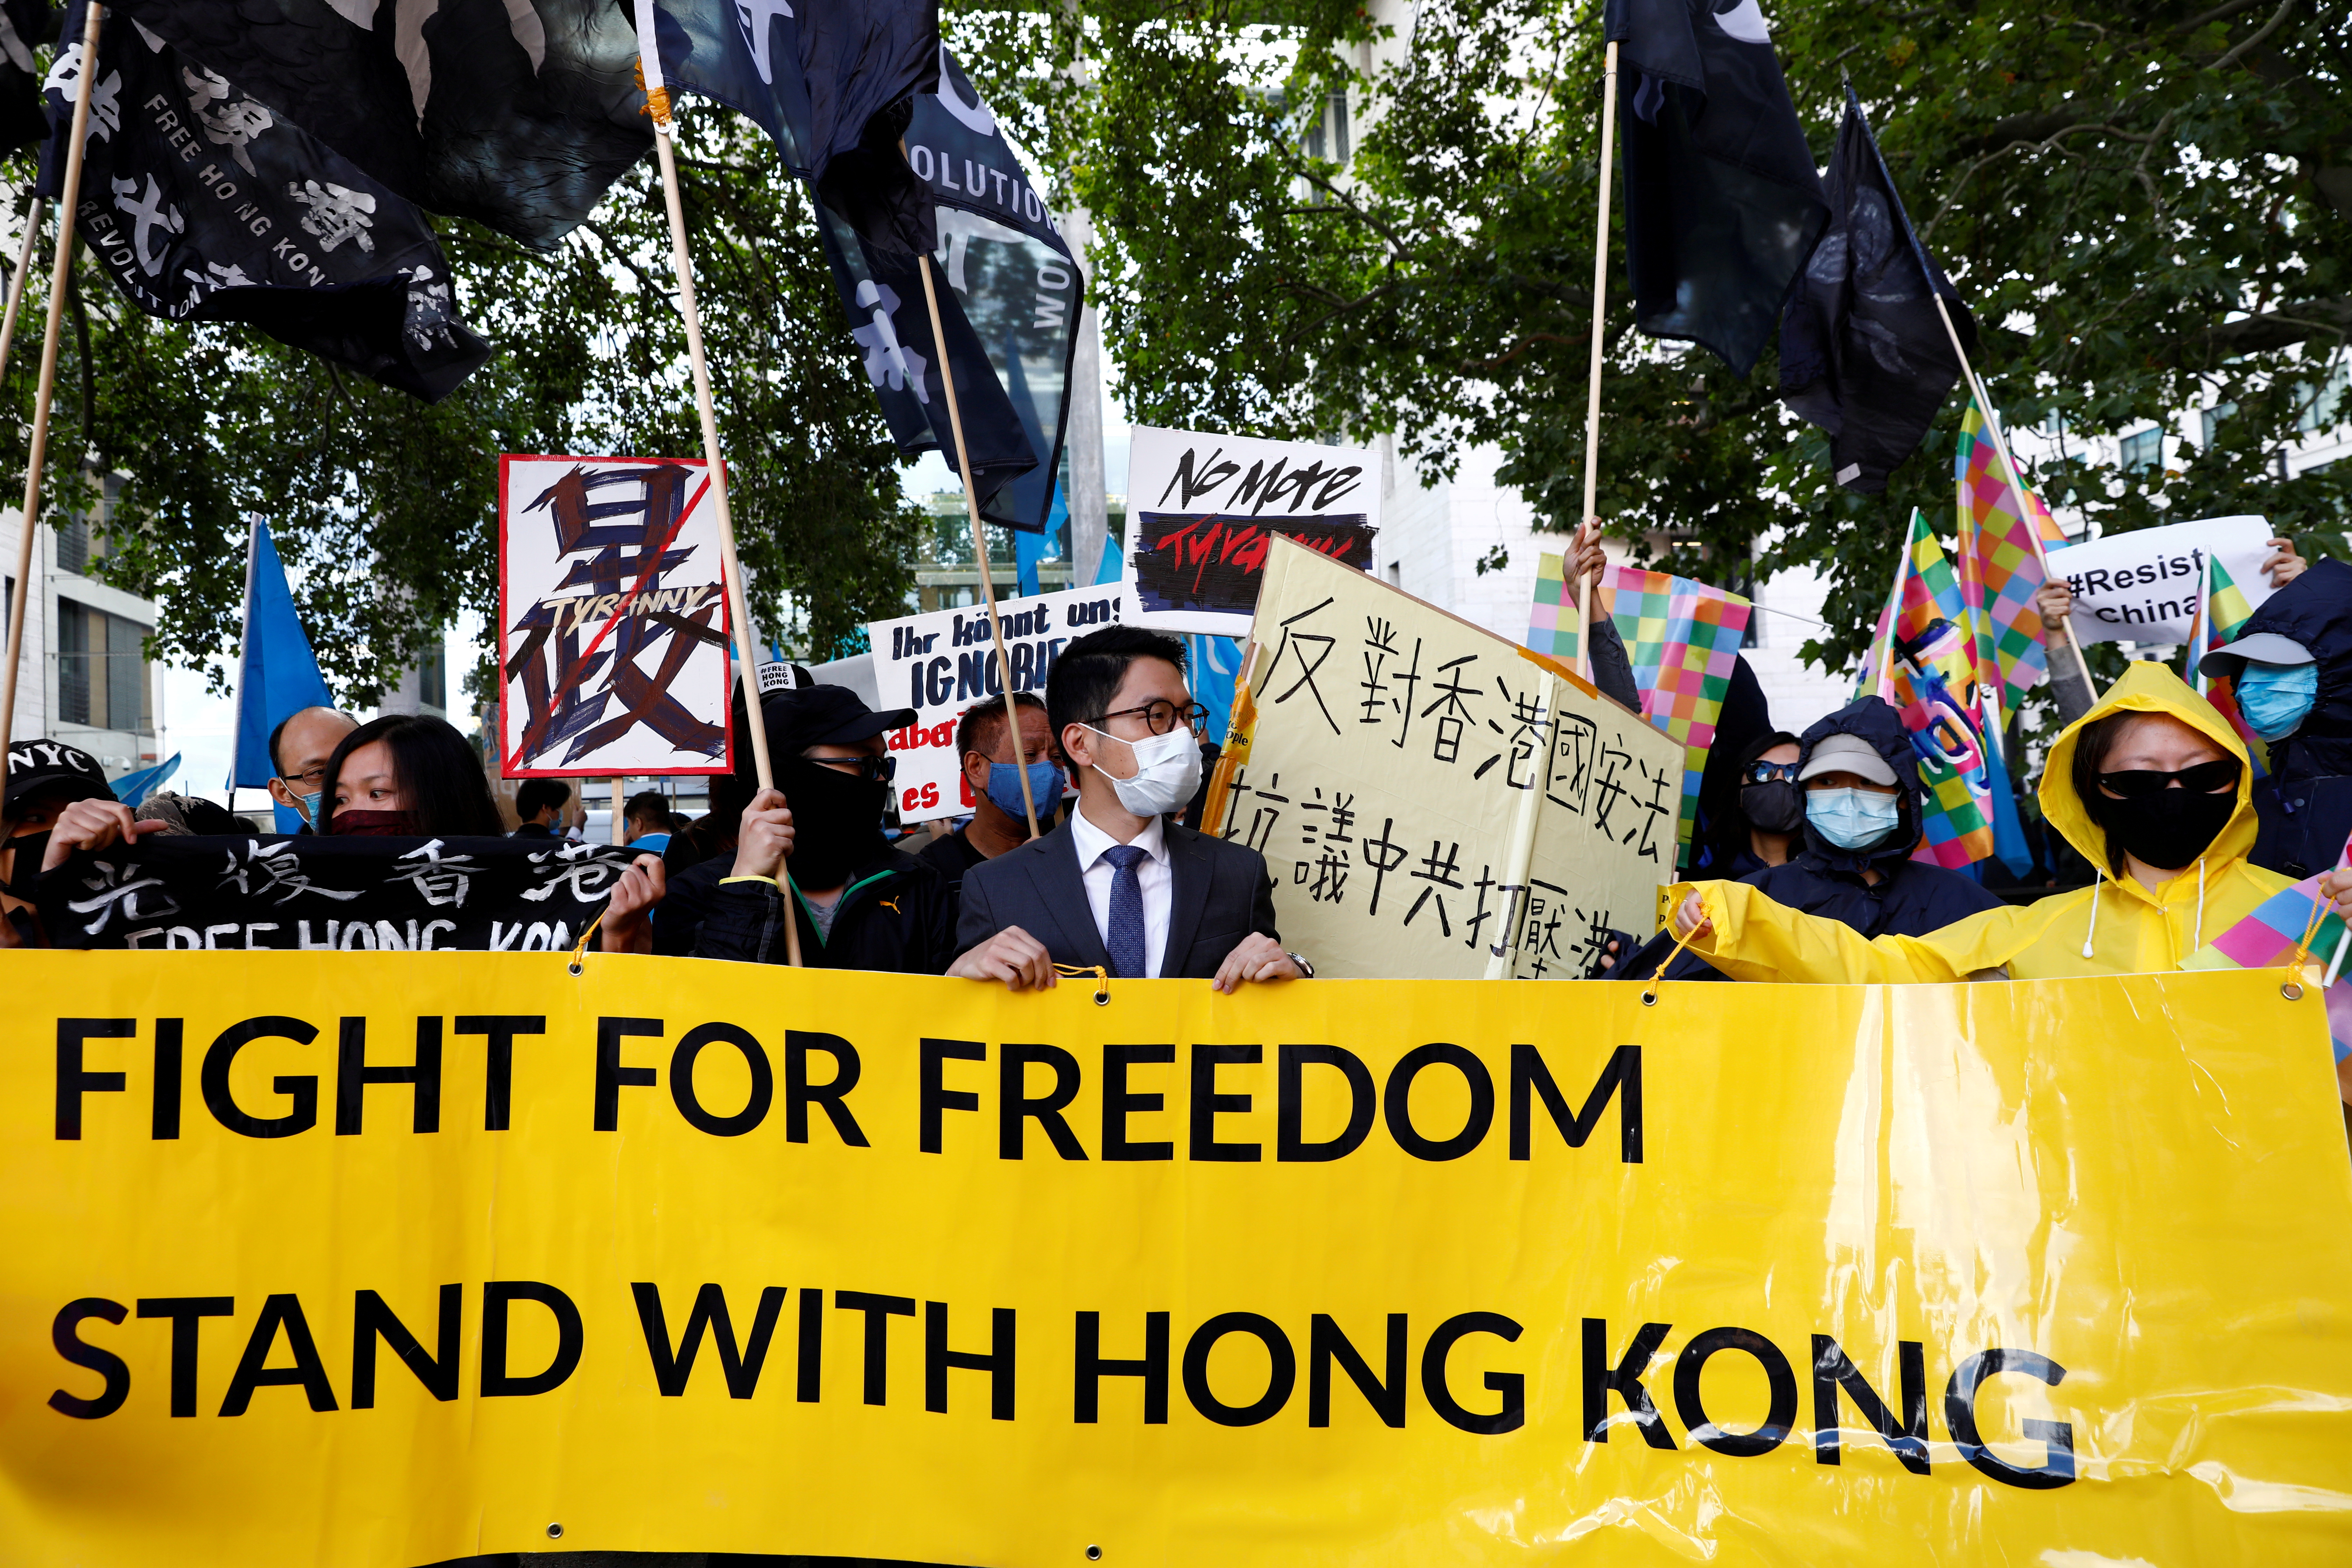 Hong Kong exile pro-democracy activist Nathan Law wearing a face mask holds a rally with other activist groups during China's Foreign Minister Wang Yi's visit in Berlin, Germany September 1, 2020. REUTERS/Michele Tantussi/File Photo